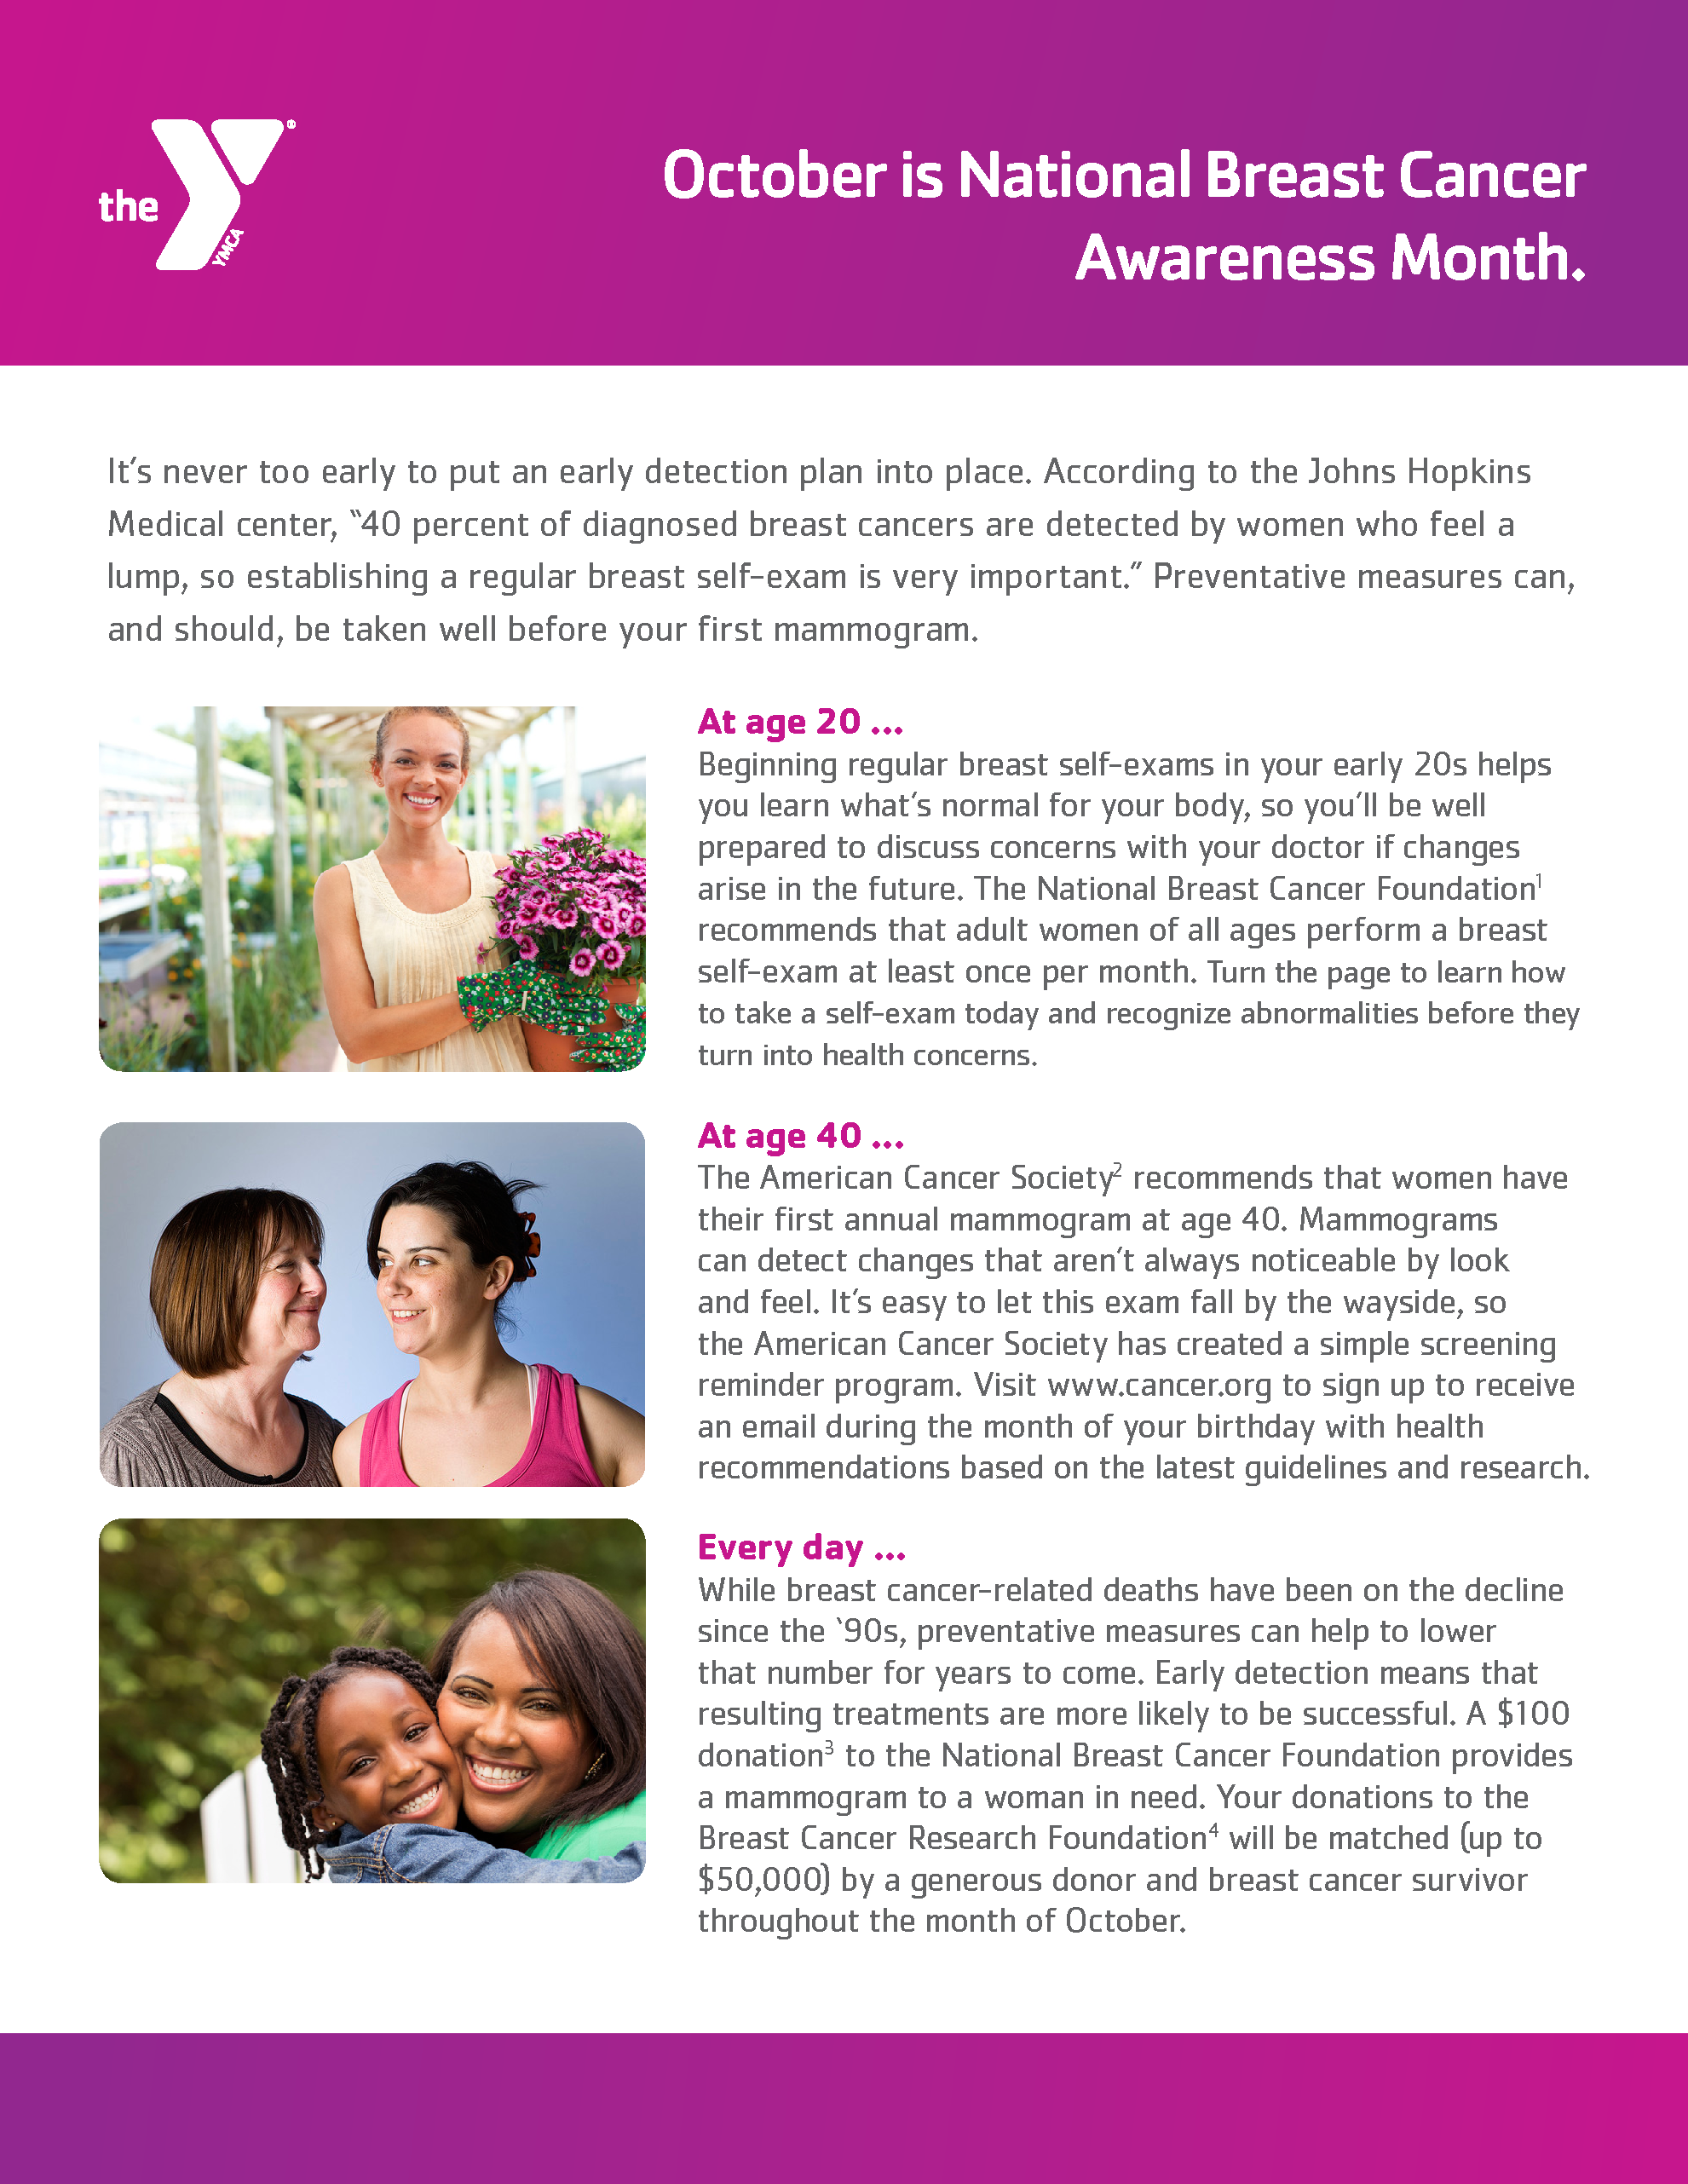 Breast Cancer Awareness Month one-sheet, side 1